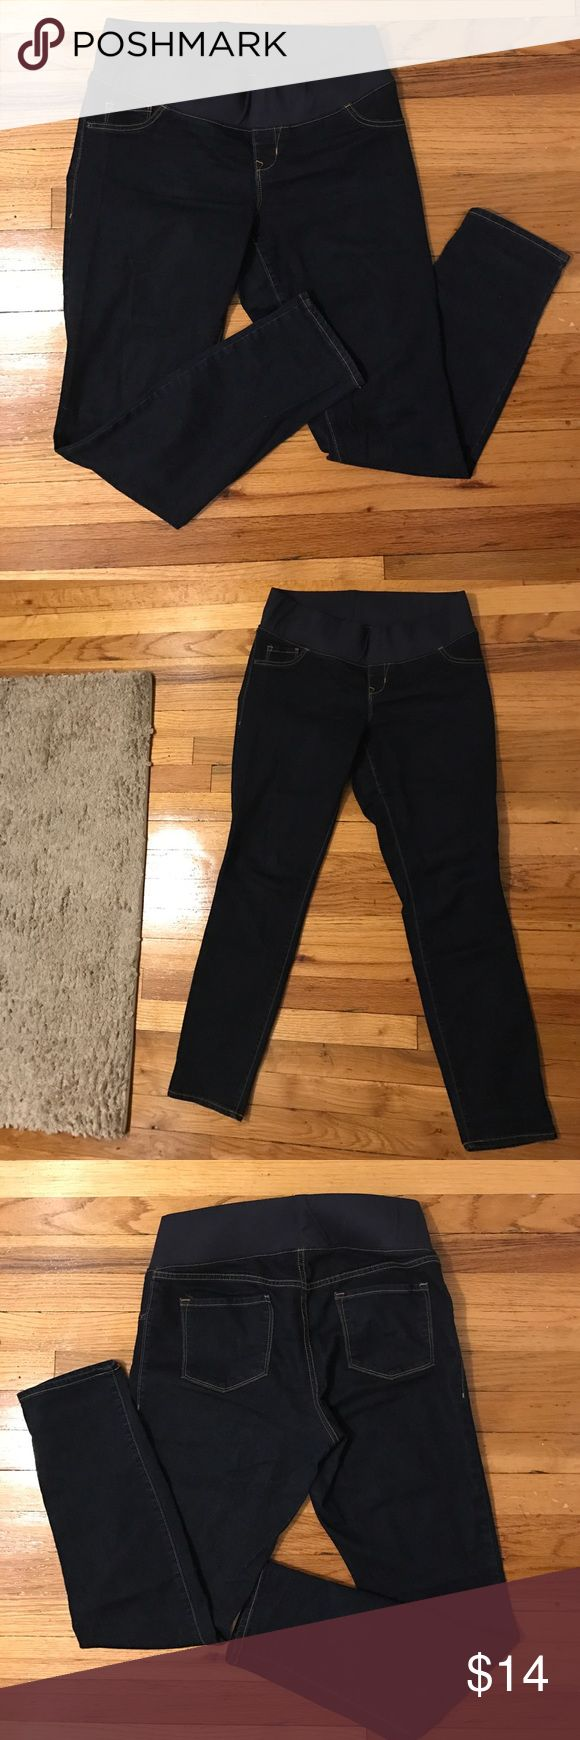 Old Navy Waistband Maternity Jean Recommended for up to 8 months, as by 9 you won't want to wear ANYTHING (lol). Near perfect, no signs of wear. Size 10 R skinny stretch jeans. Front pockets are decorative back pockets are functional. Make them yours! Old Navy Pants Skinny